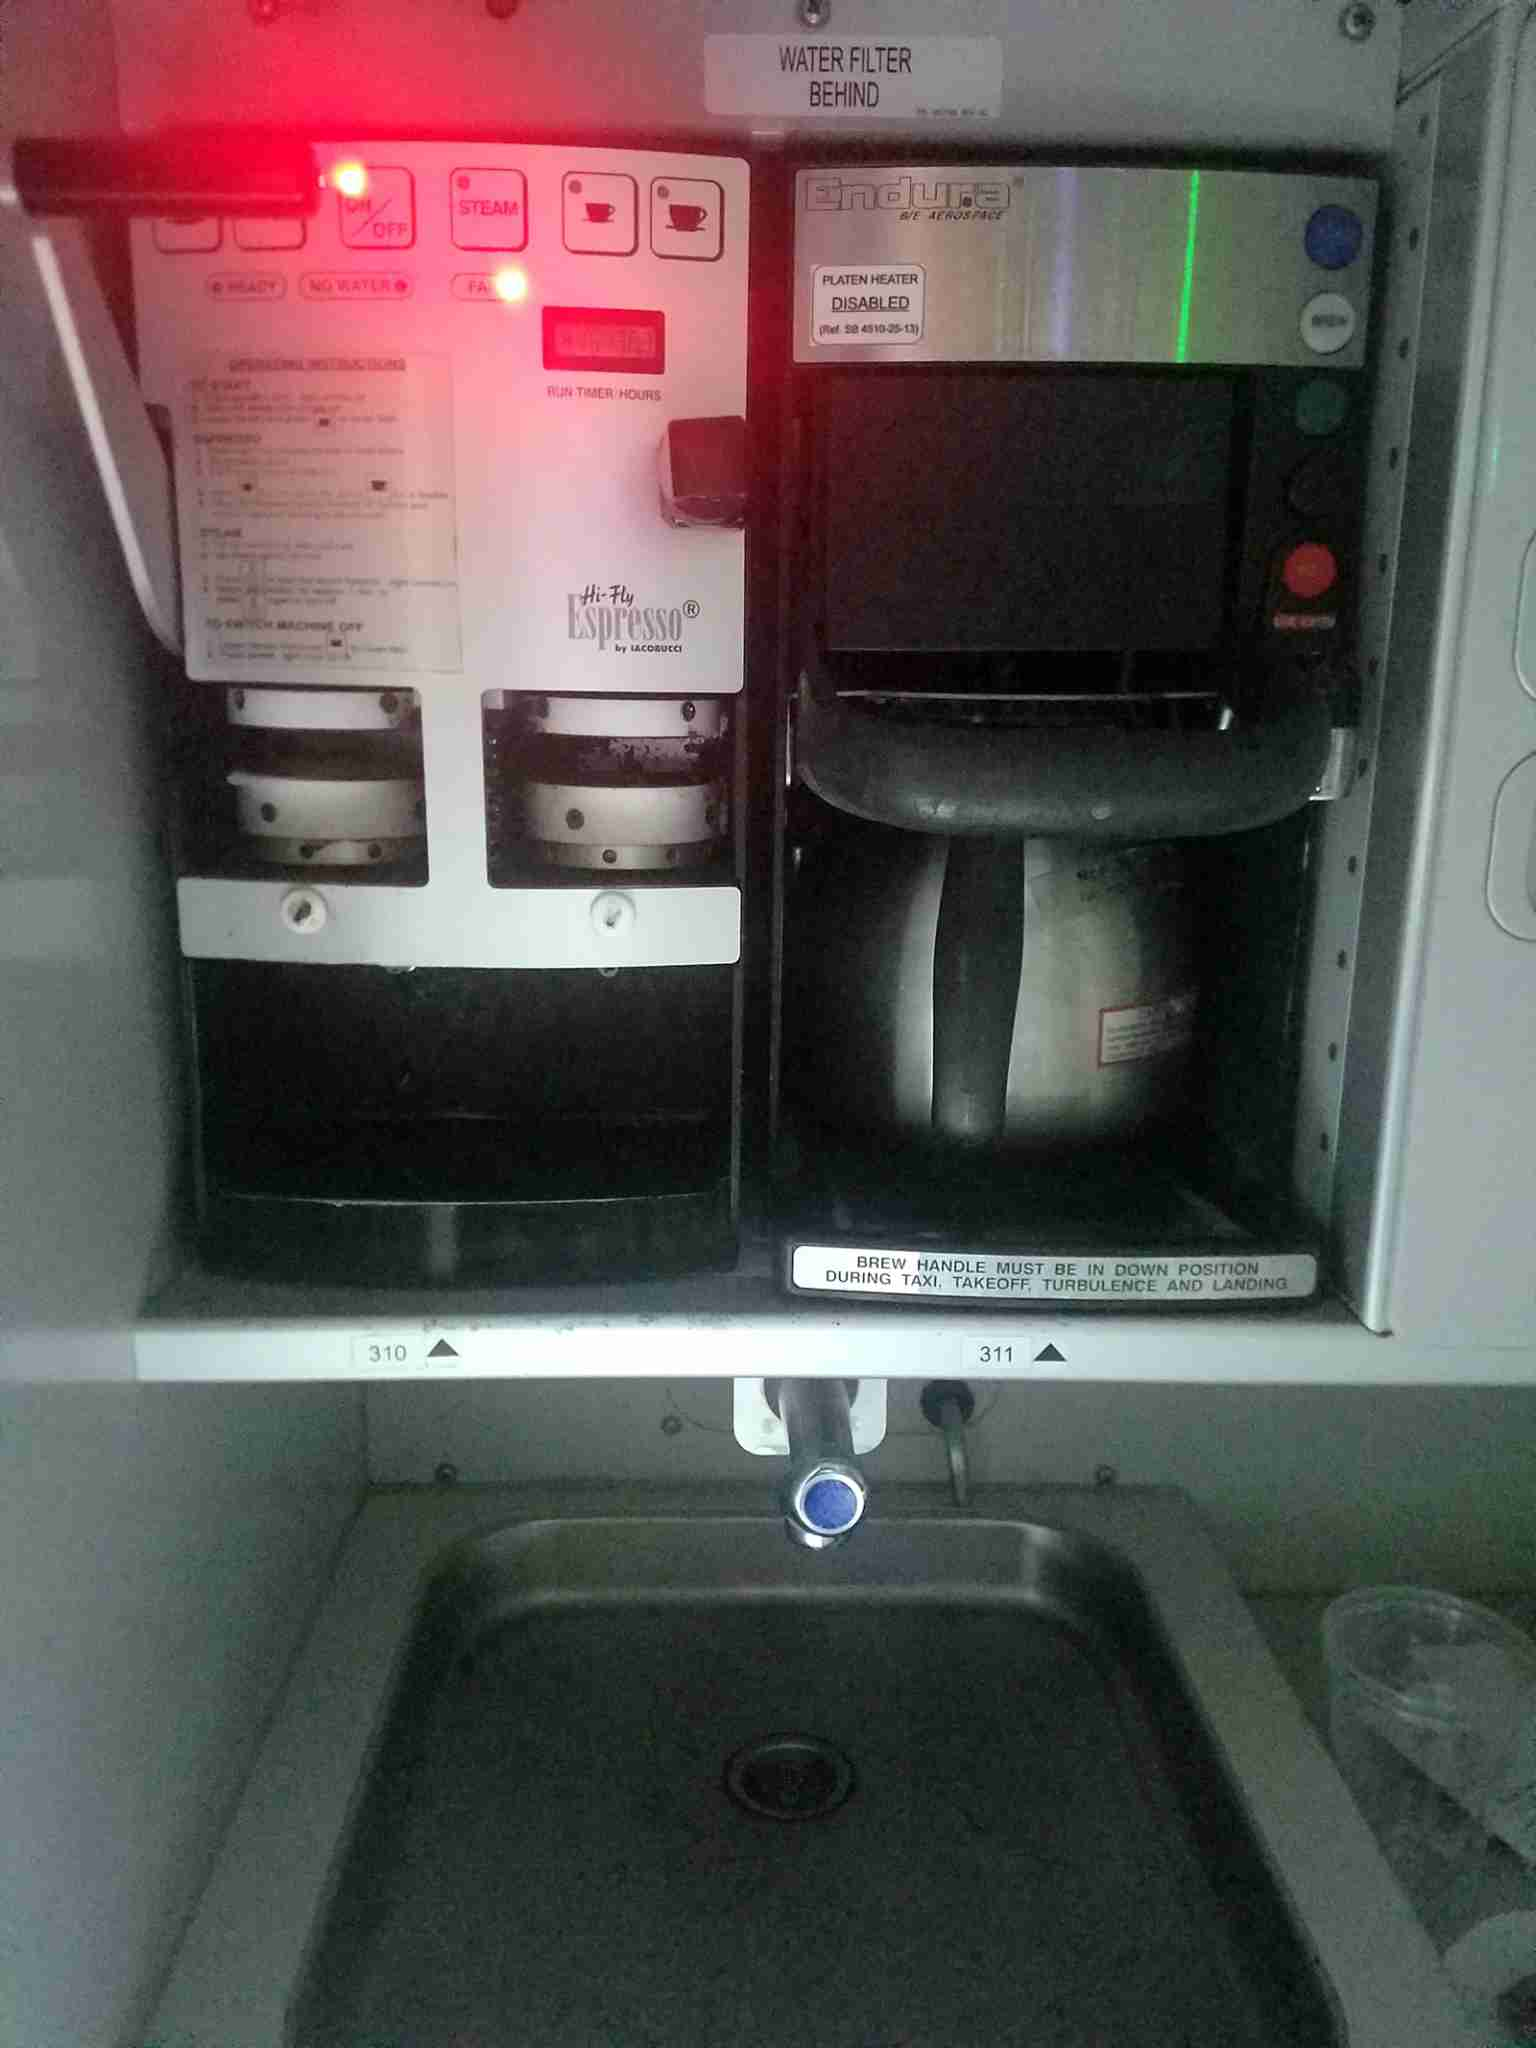 An espresso maker in the galley of an Alitalia Airbus A330 (Photo by Alberrto Riva/TPG)